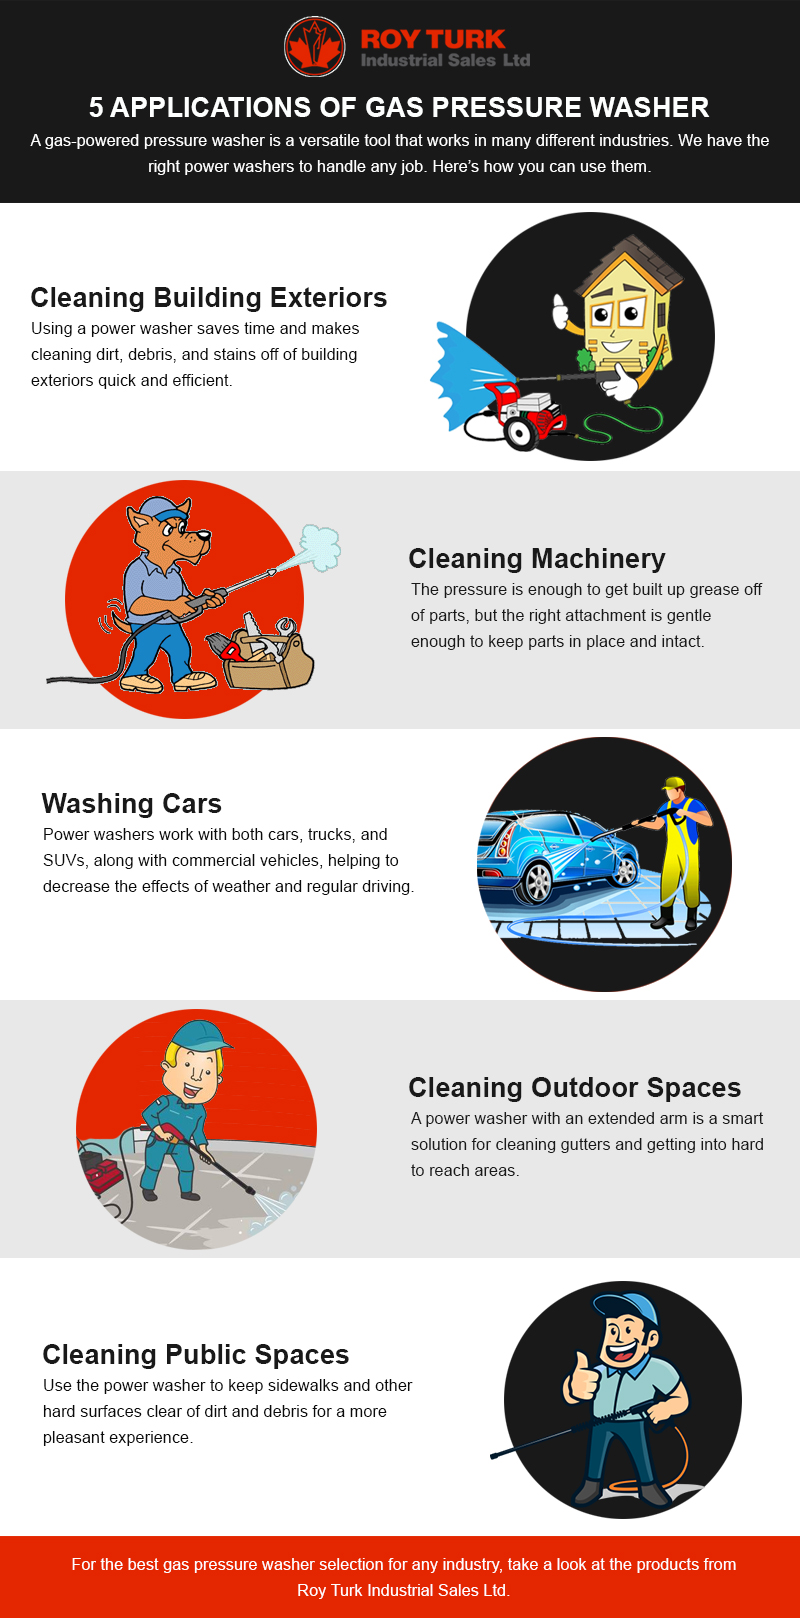 Applications of Gas Pressure Washer